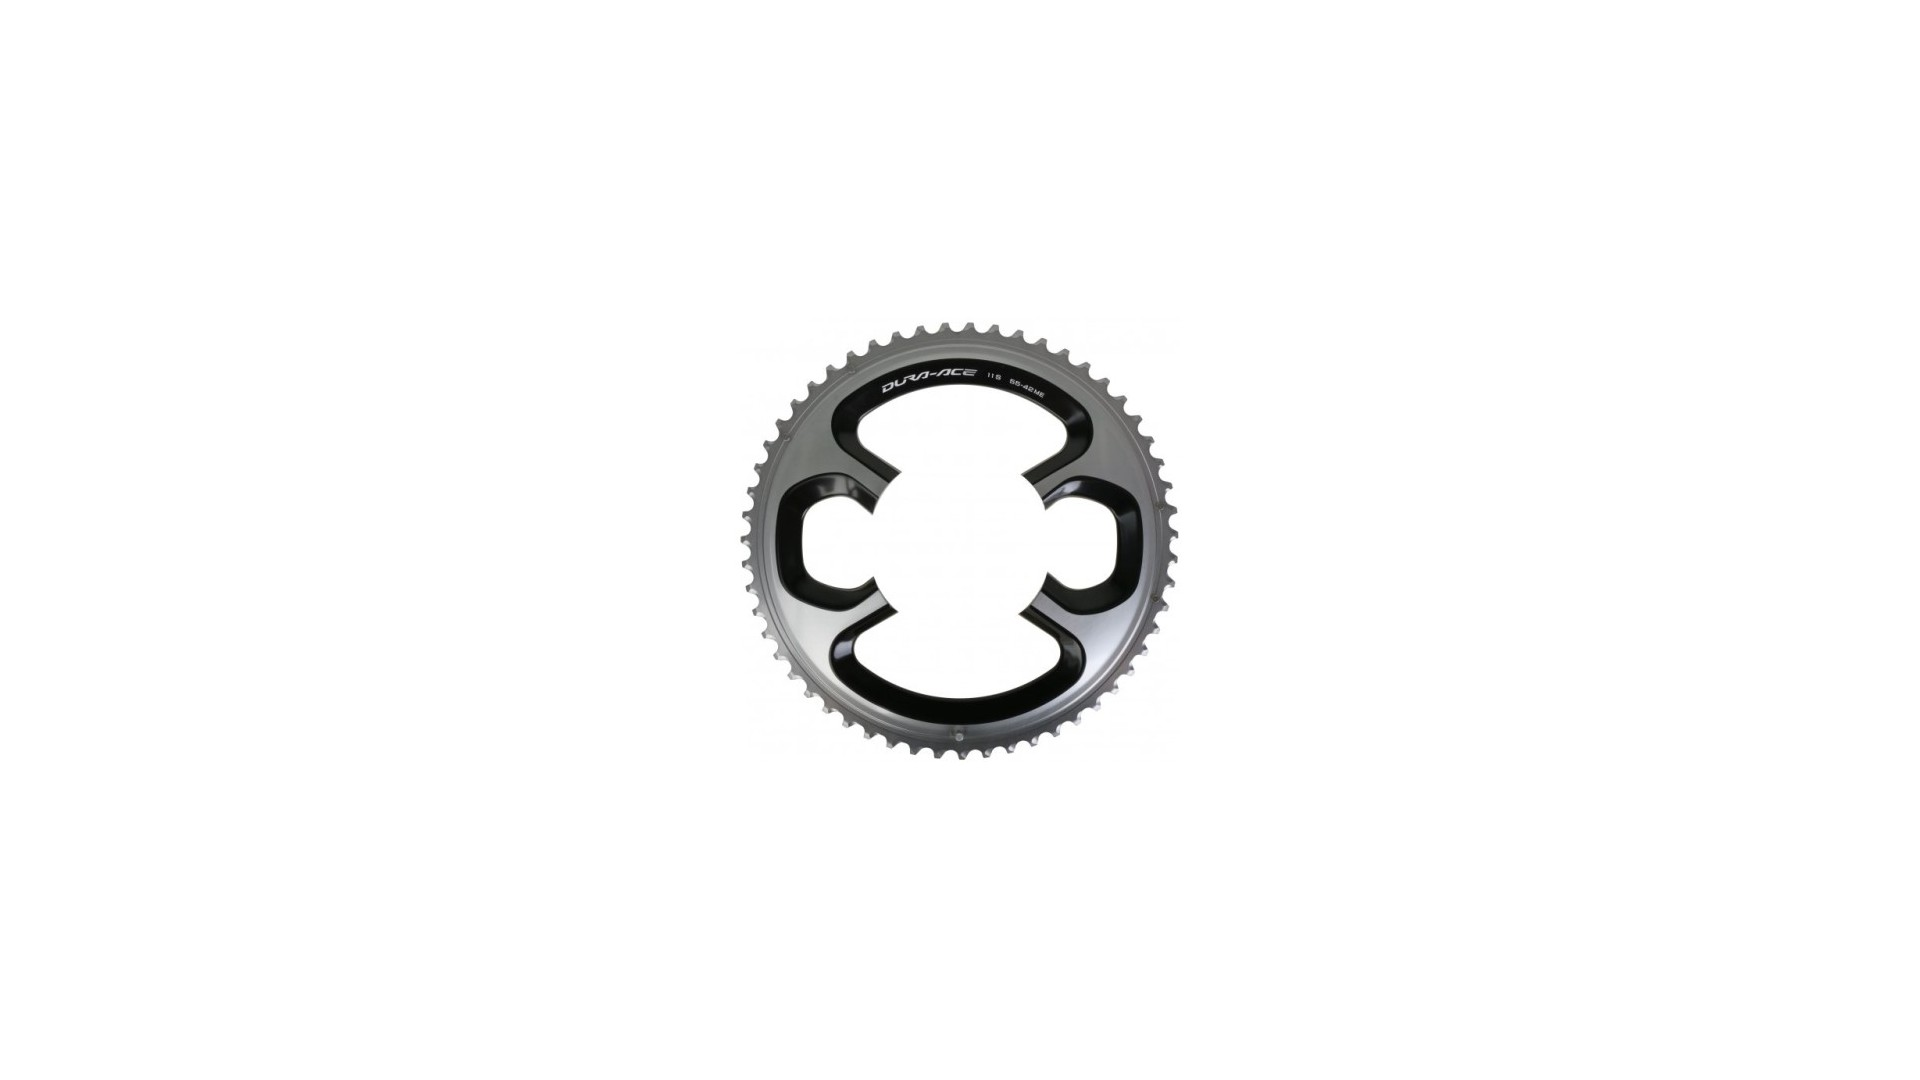 Chainring 36d Shimano 9000 Dura Ace (52/ 36)